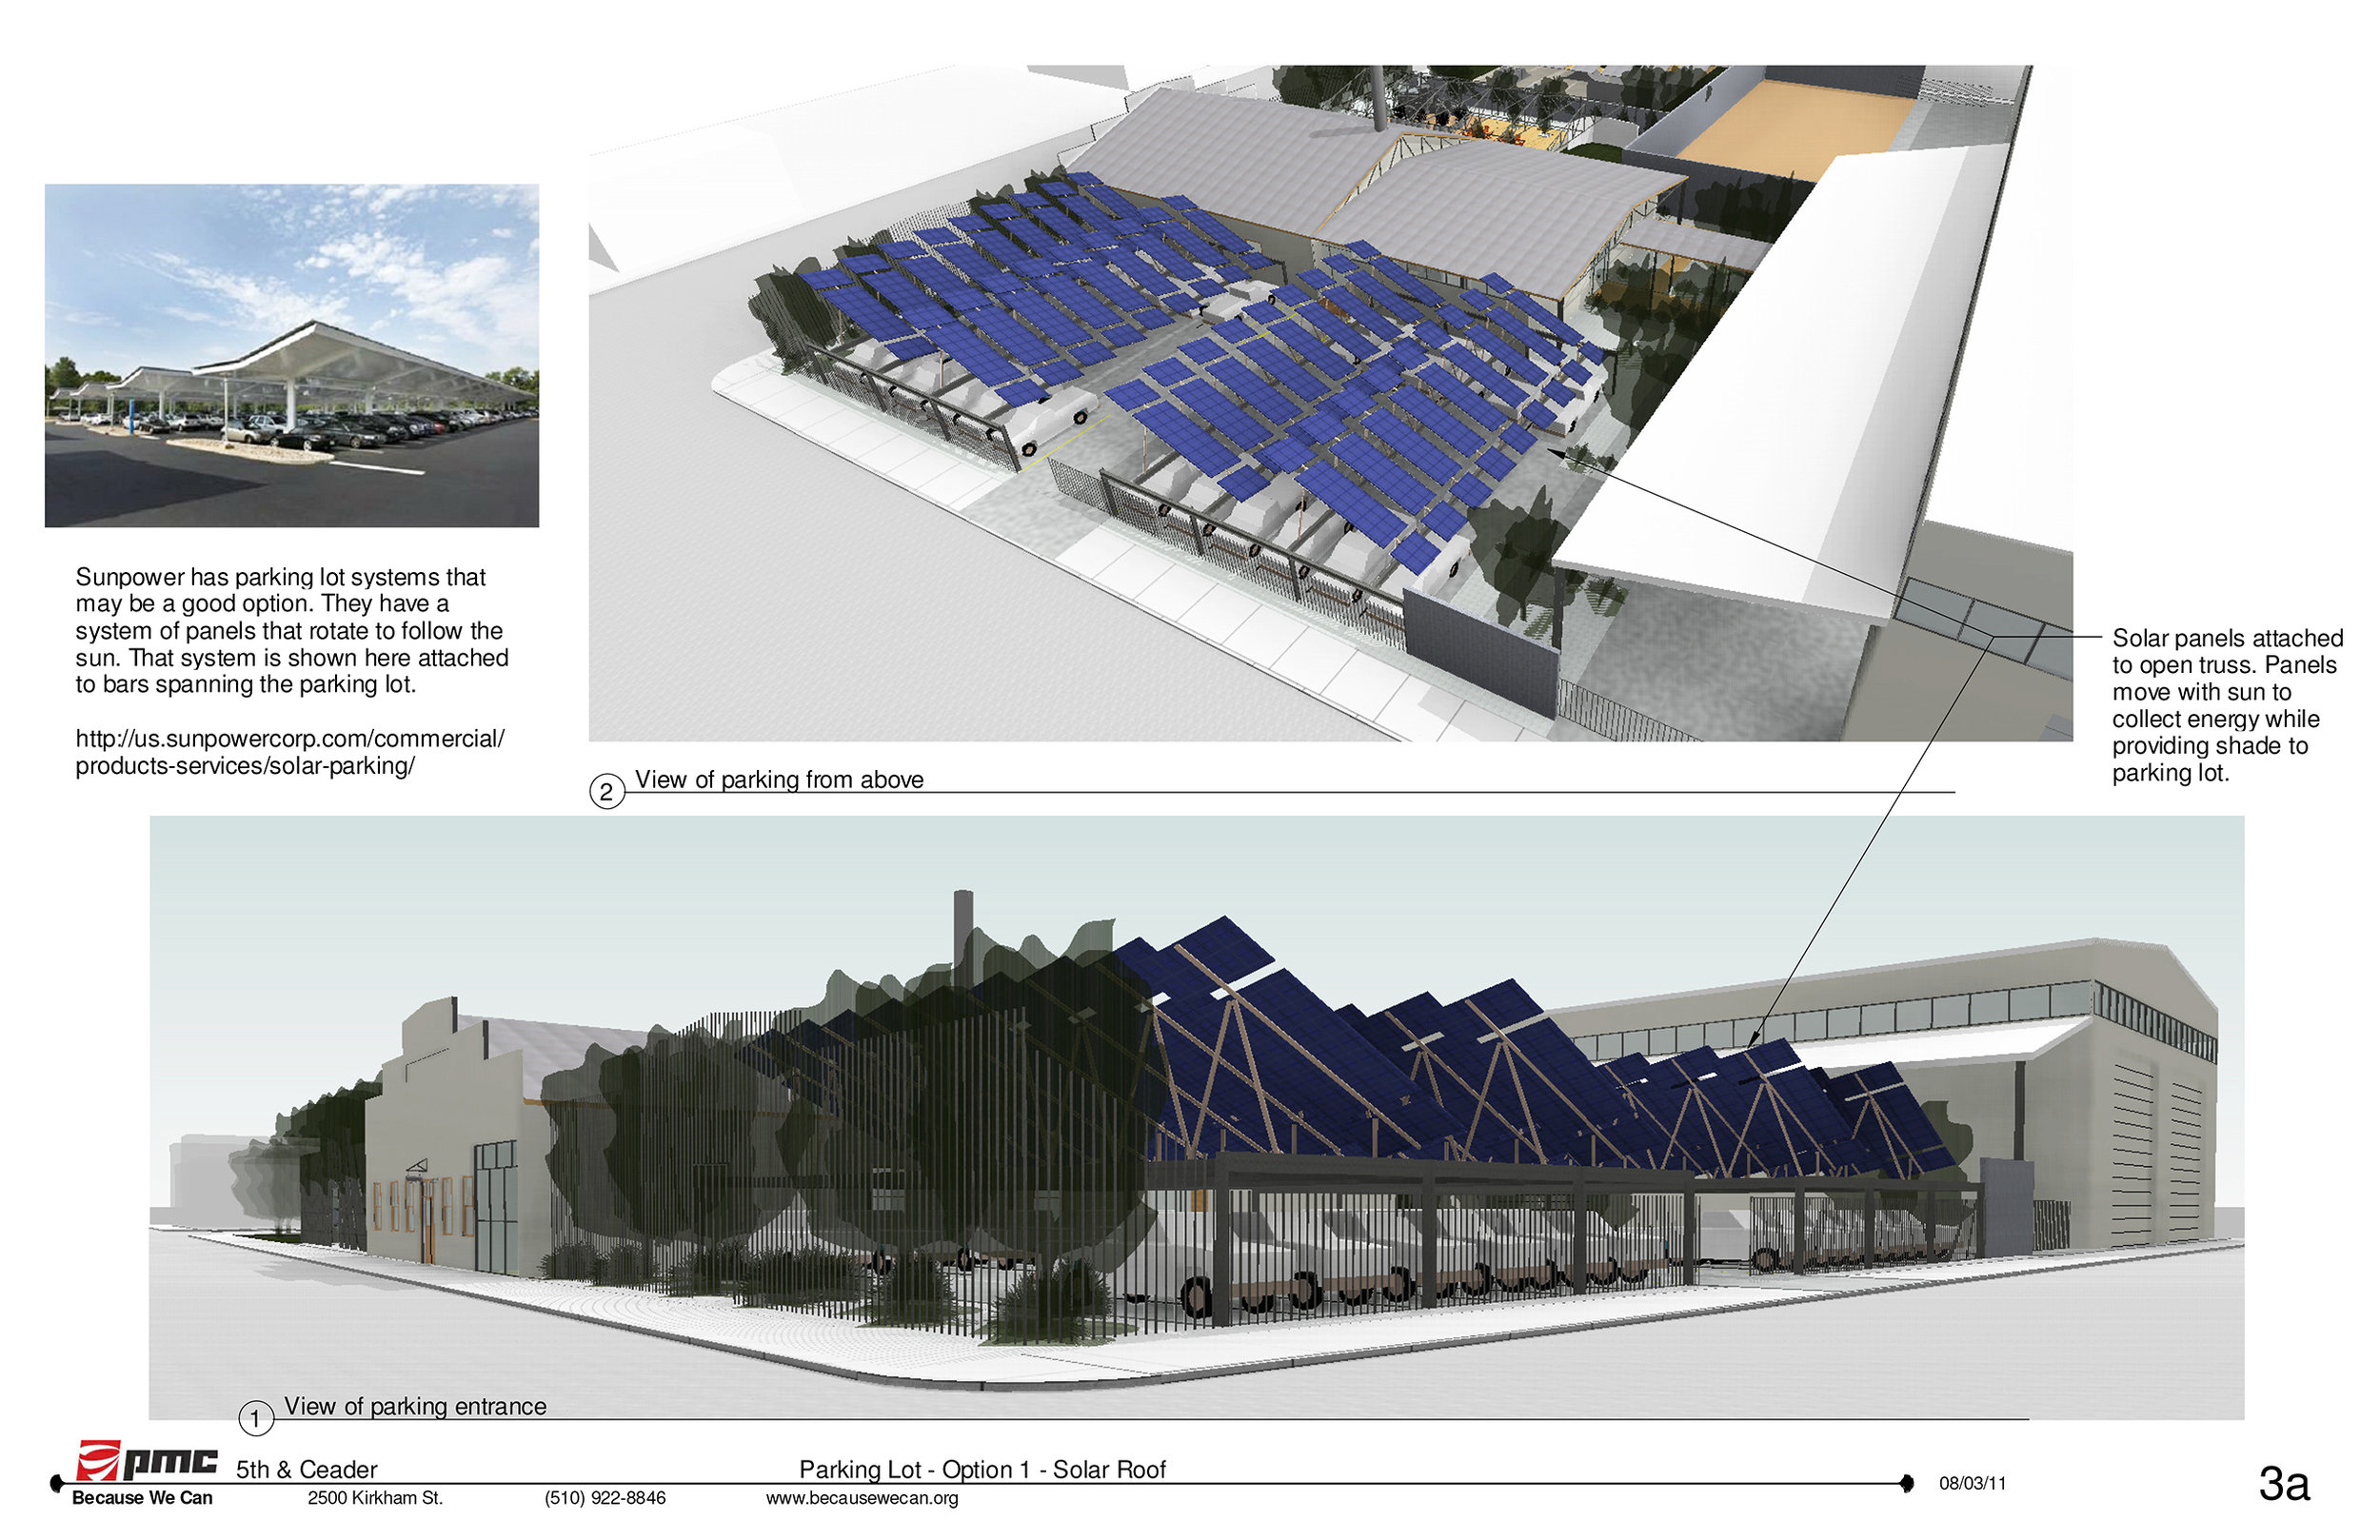 The large parking lot out front is covered in solar panels doubling as shade structures. The panels are easily enough to power all the night time lights for the parking as well as much of the power for the office building.